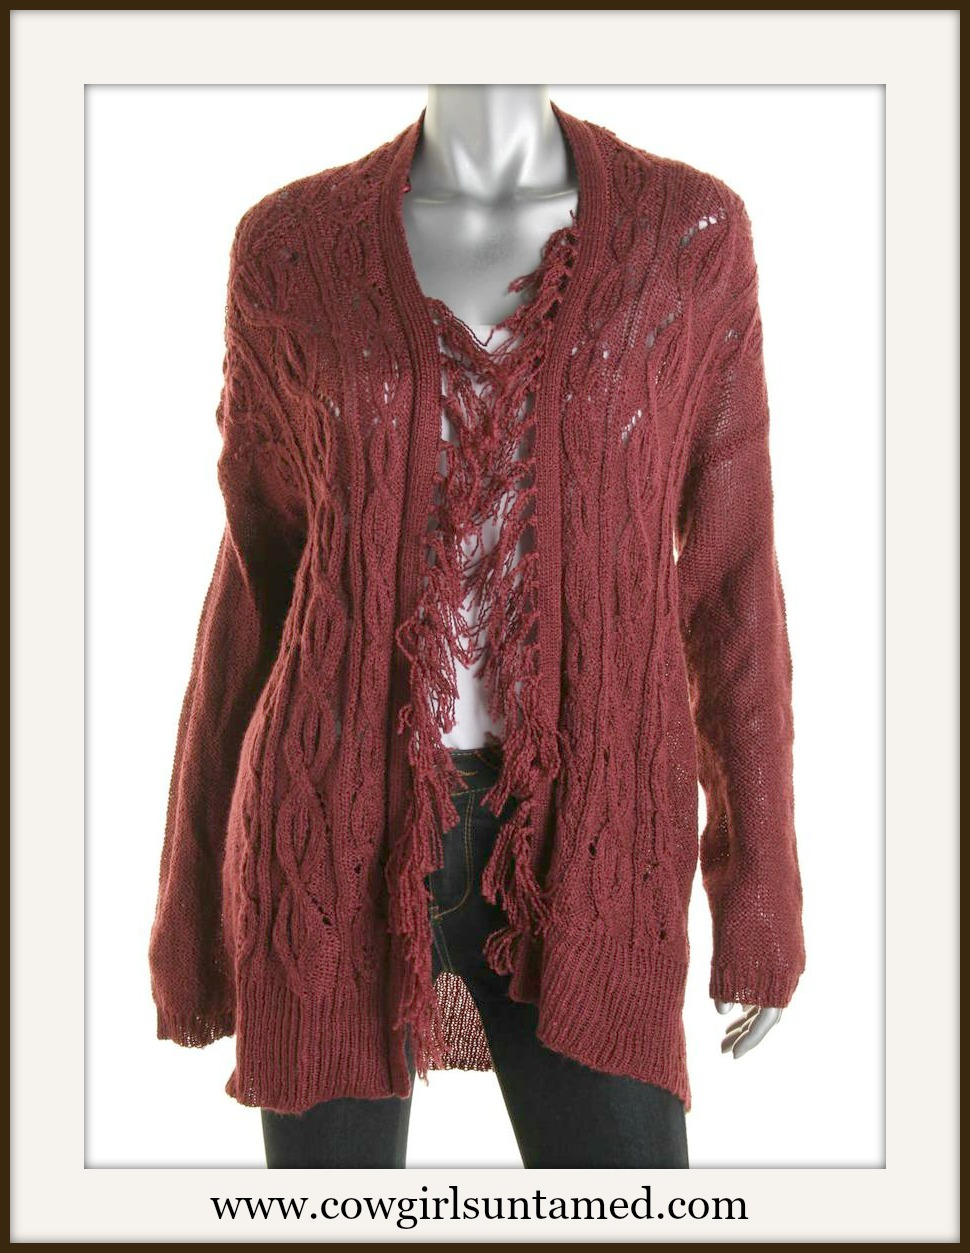 Jackets Sweaters Vests| Cowgirls Untamed